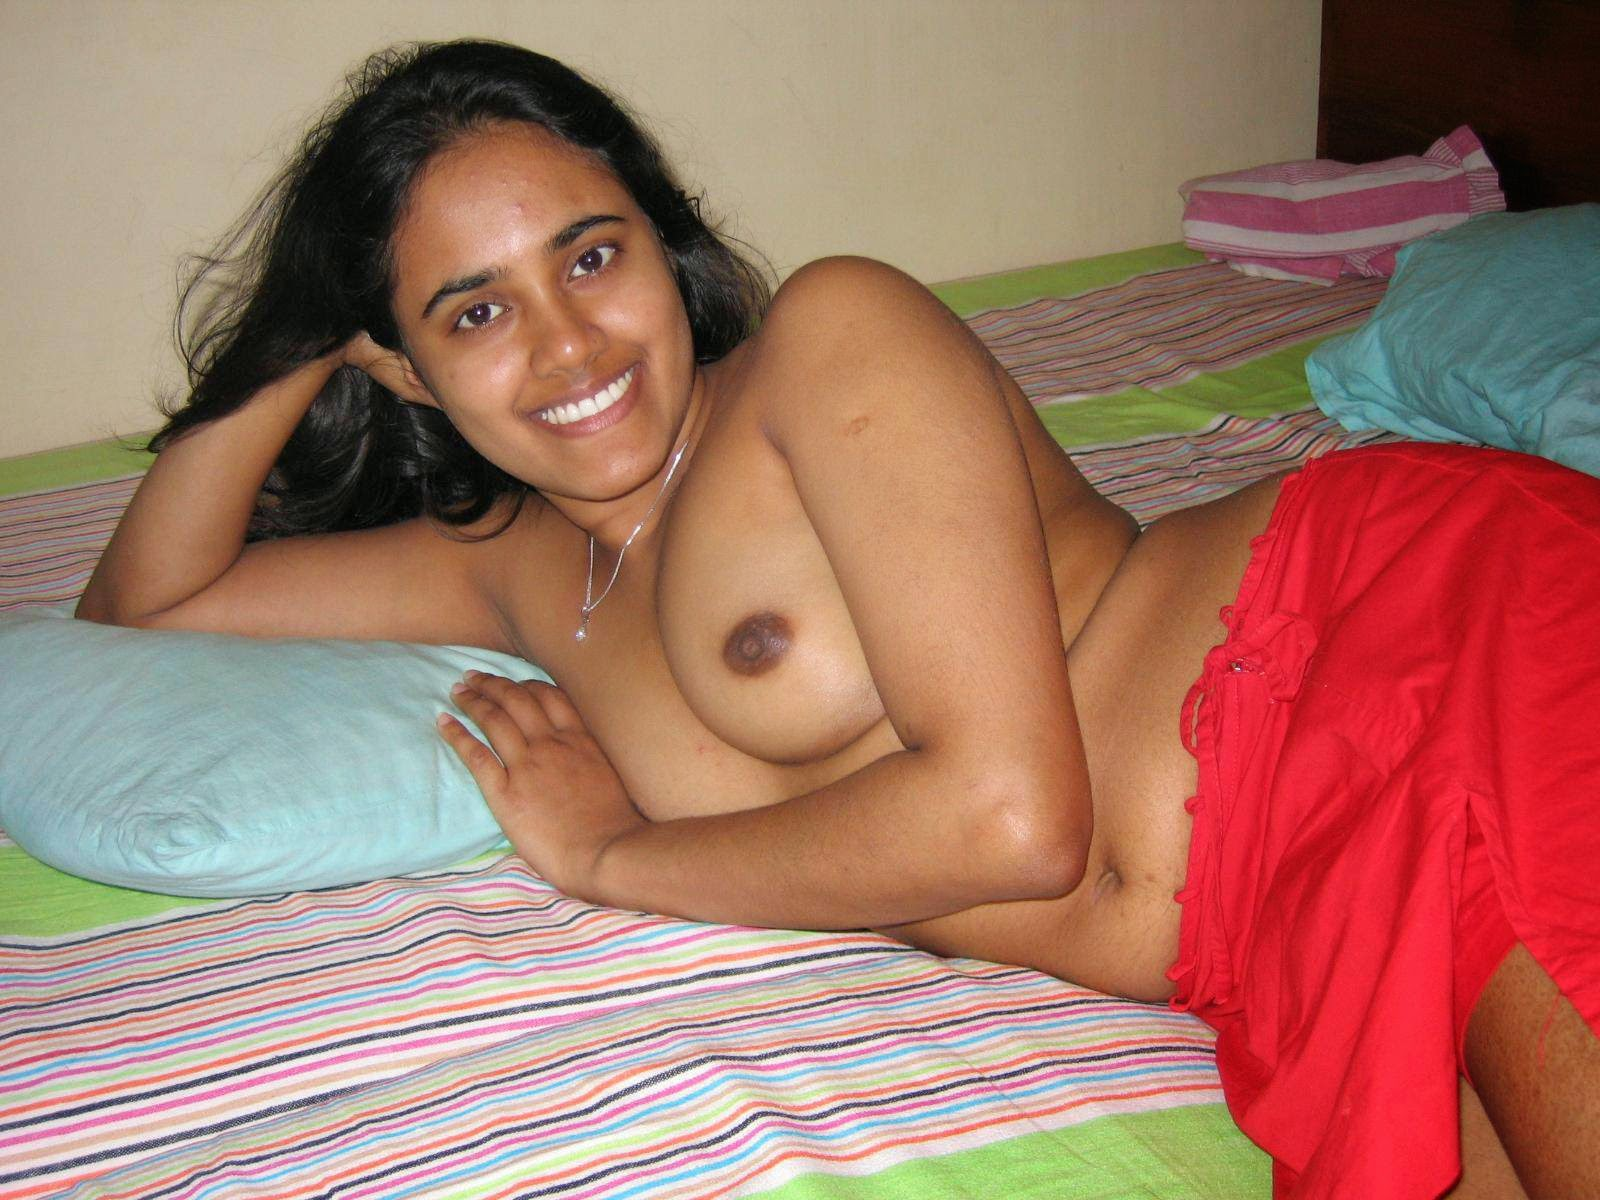 Arabgirlsnude Sri Lanka Fat Sex Women Hot Videos